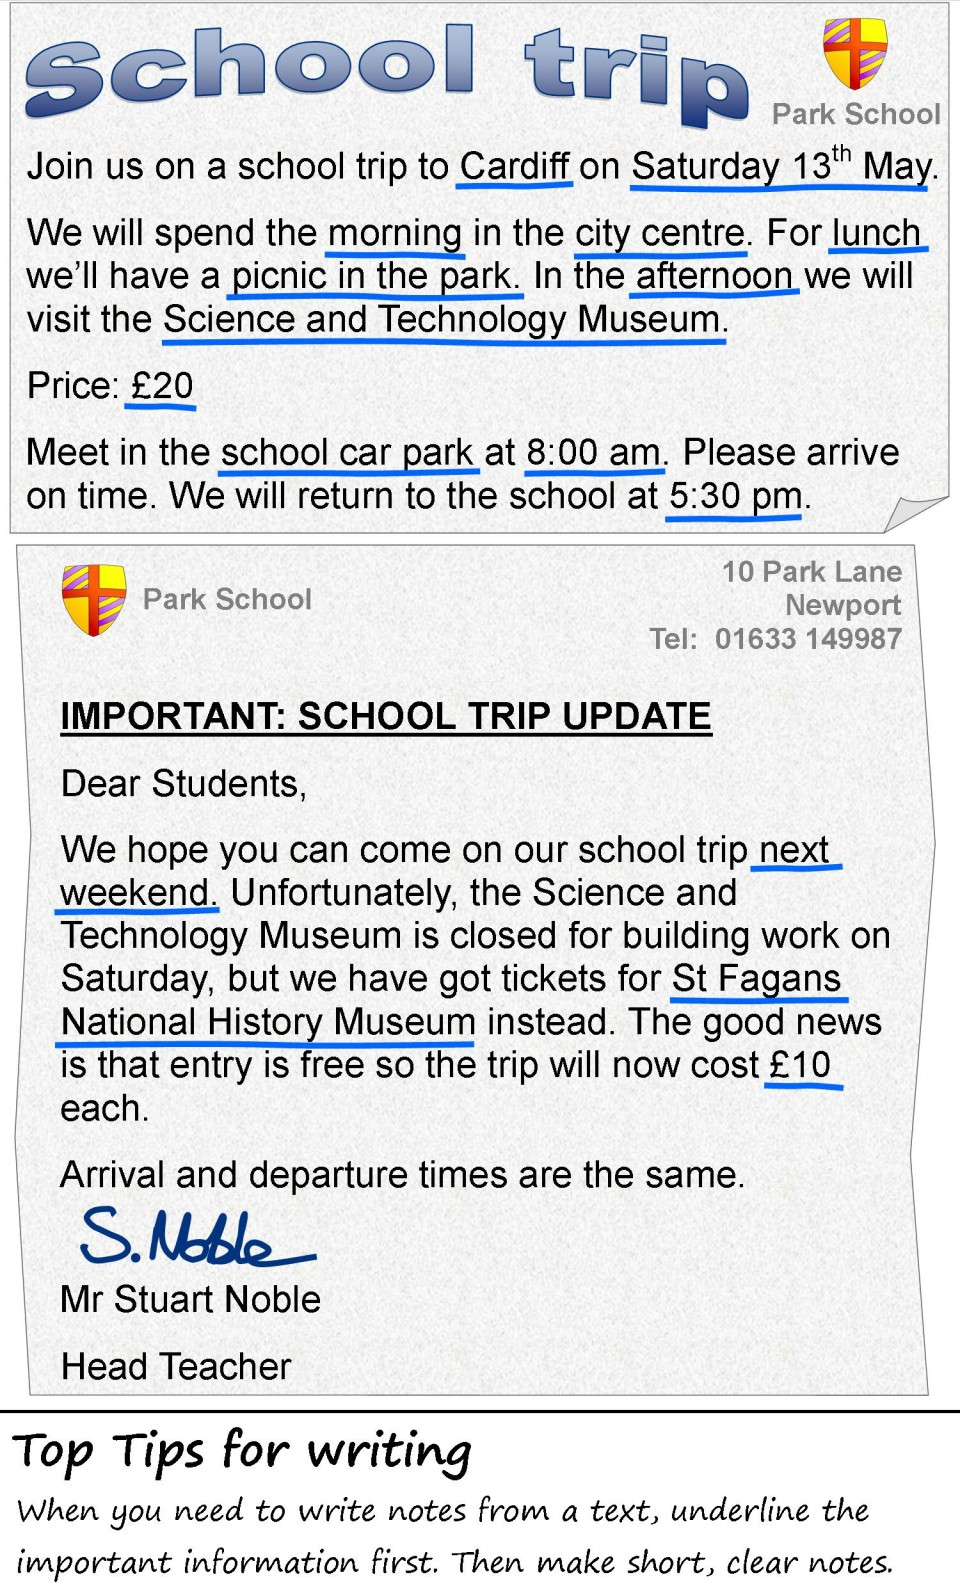 009 The School Trip 4 Essay Example My Favourite Newspaper In Striking English 960